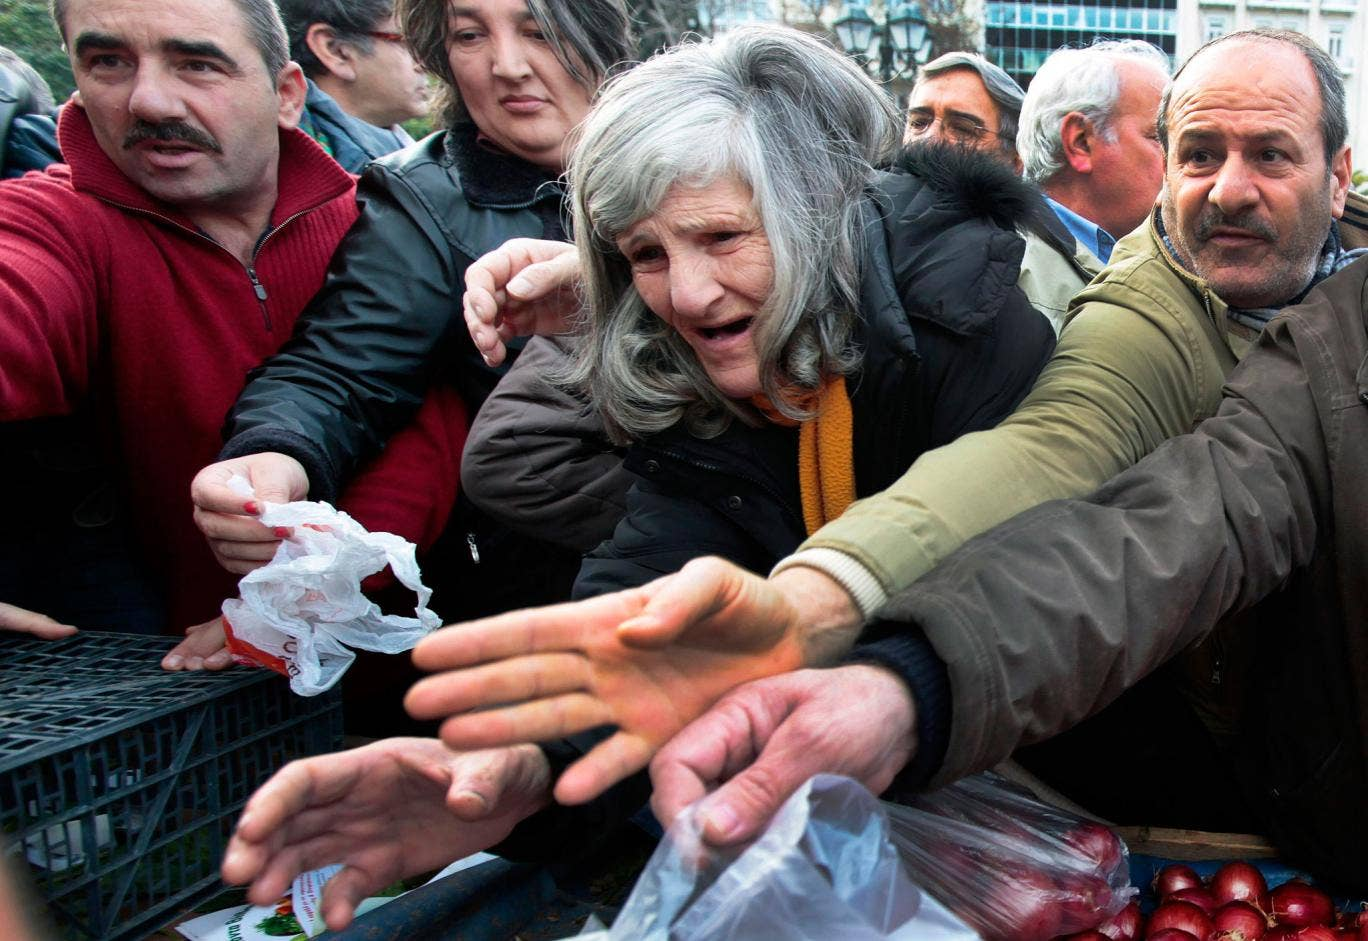 Greeks struggling to get free food in Athens in January 2012